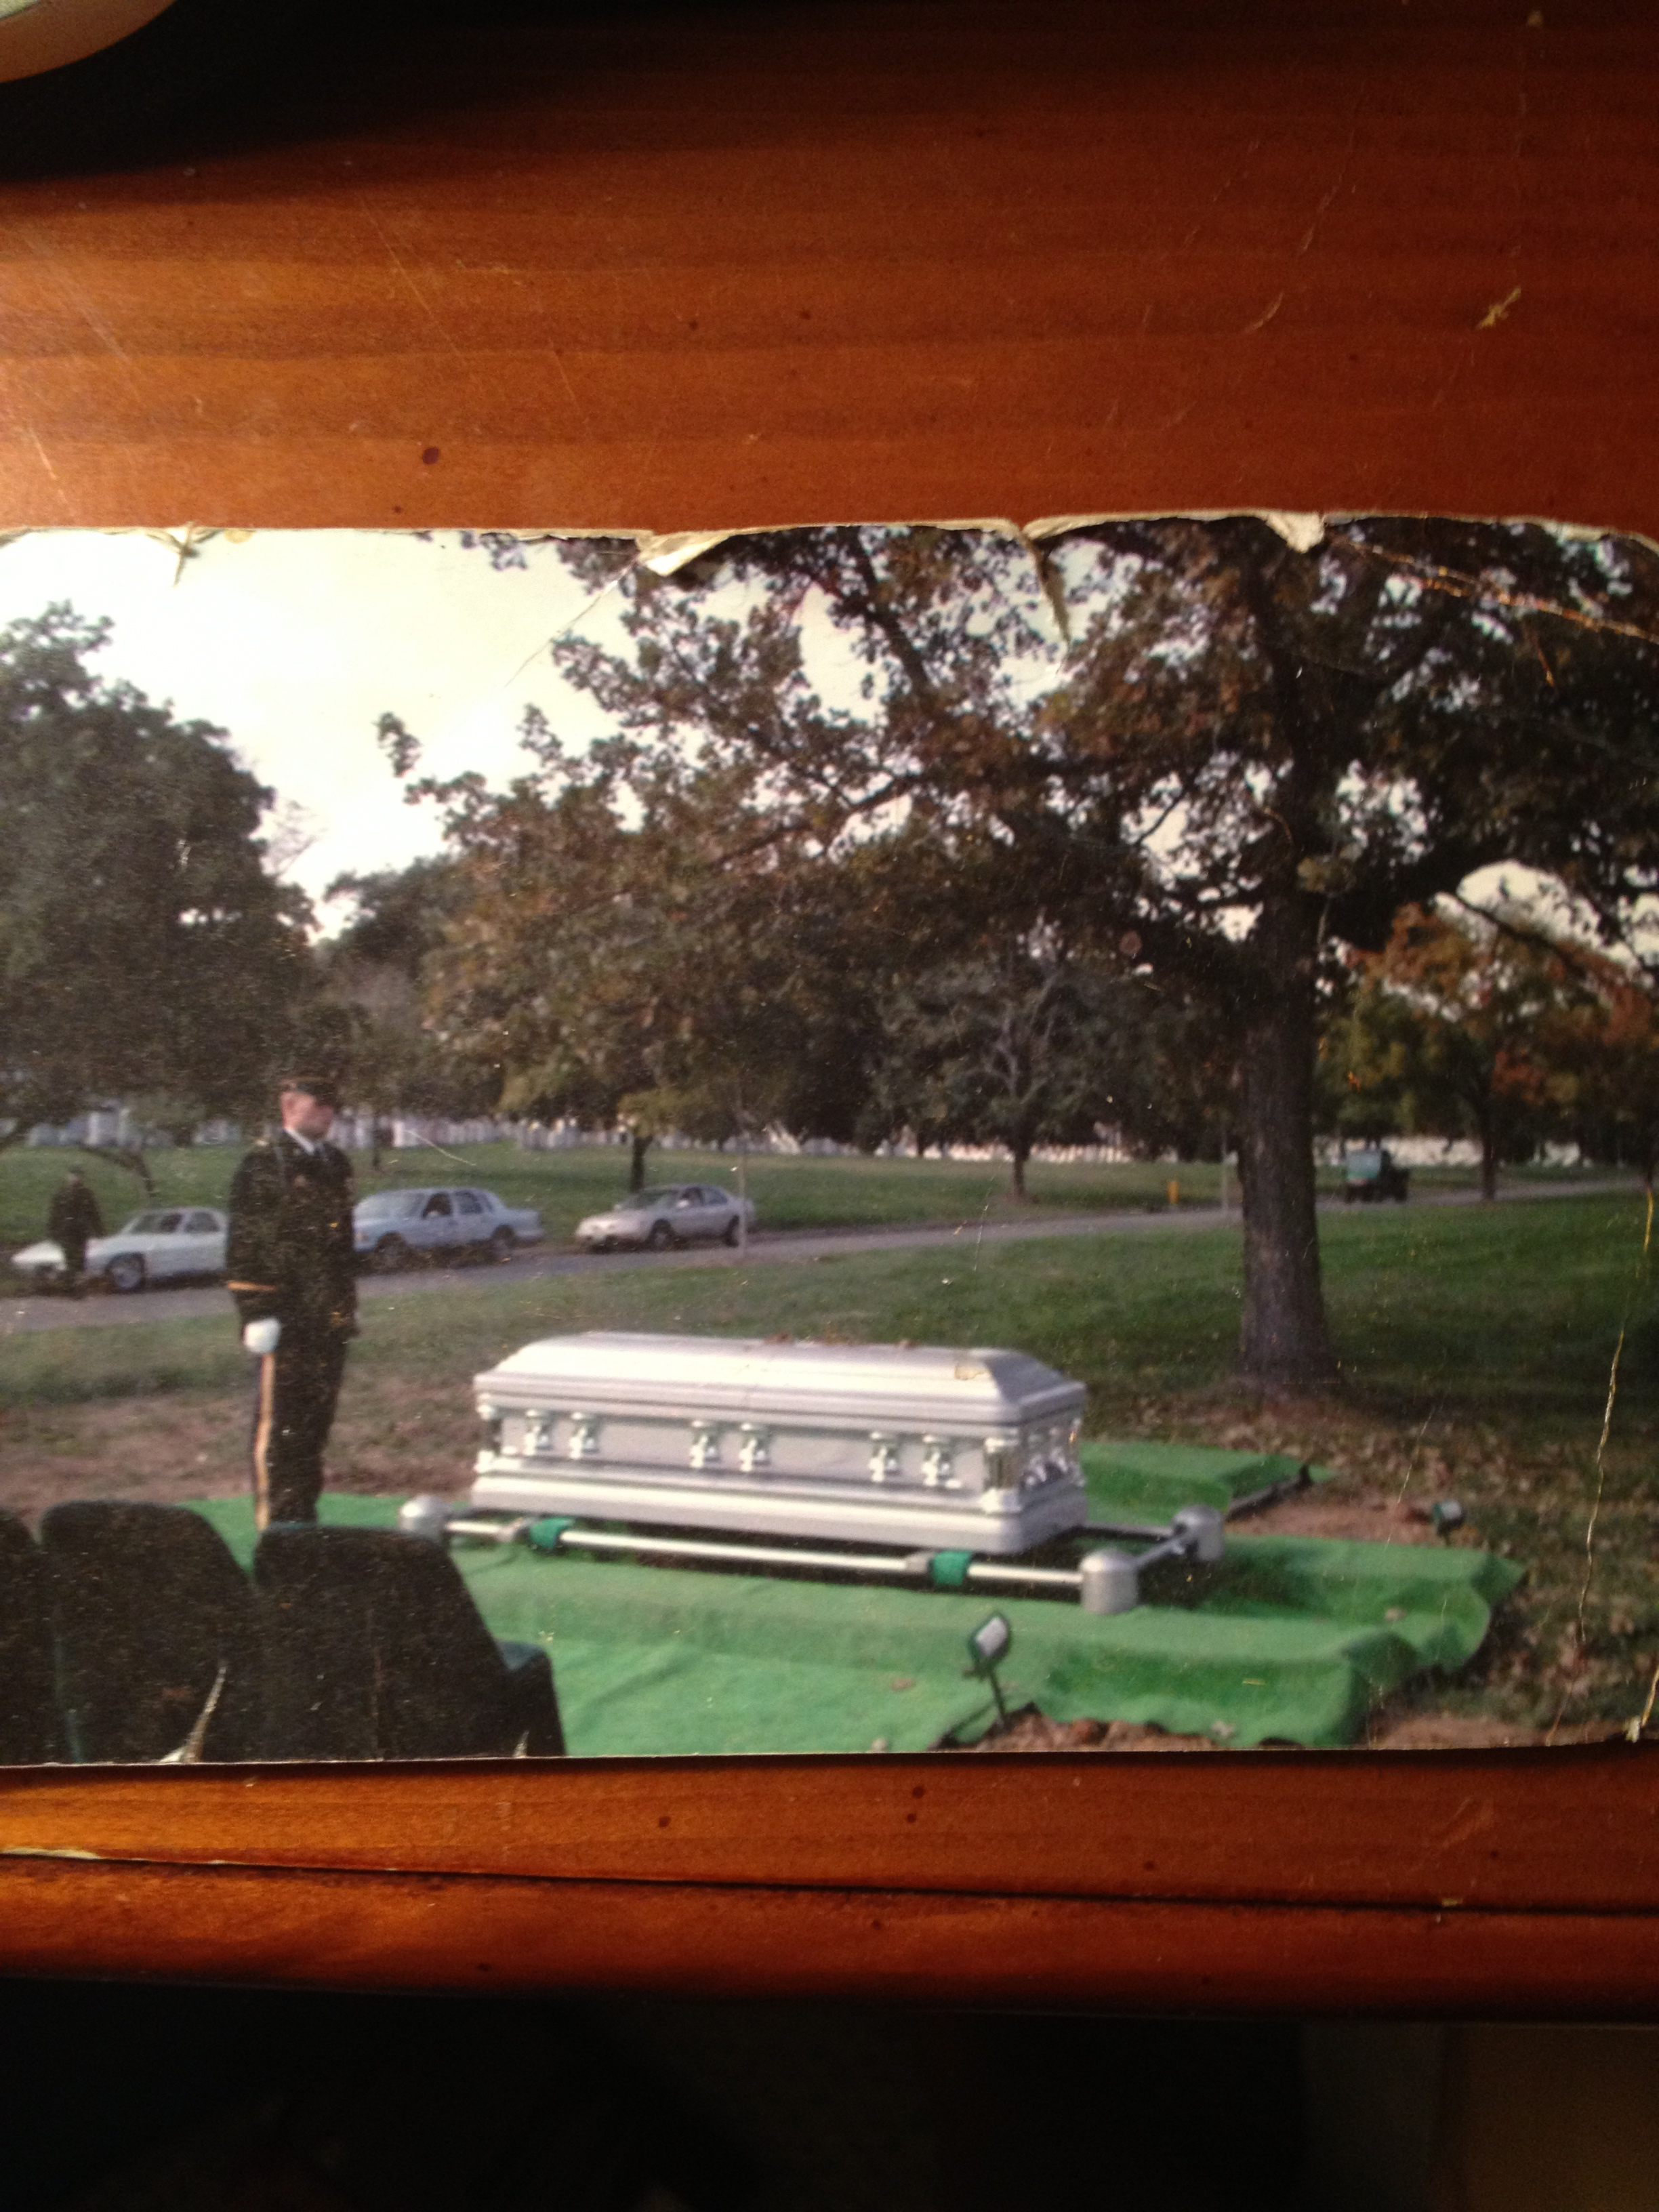 MY HUSBAND'S BURIAL AT ARLINGTON. SORRY THE PIC IS BLURRY, IT'S NOT EASY GOING THRU THIS